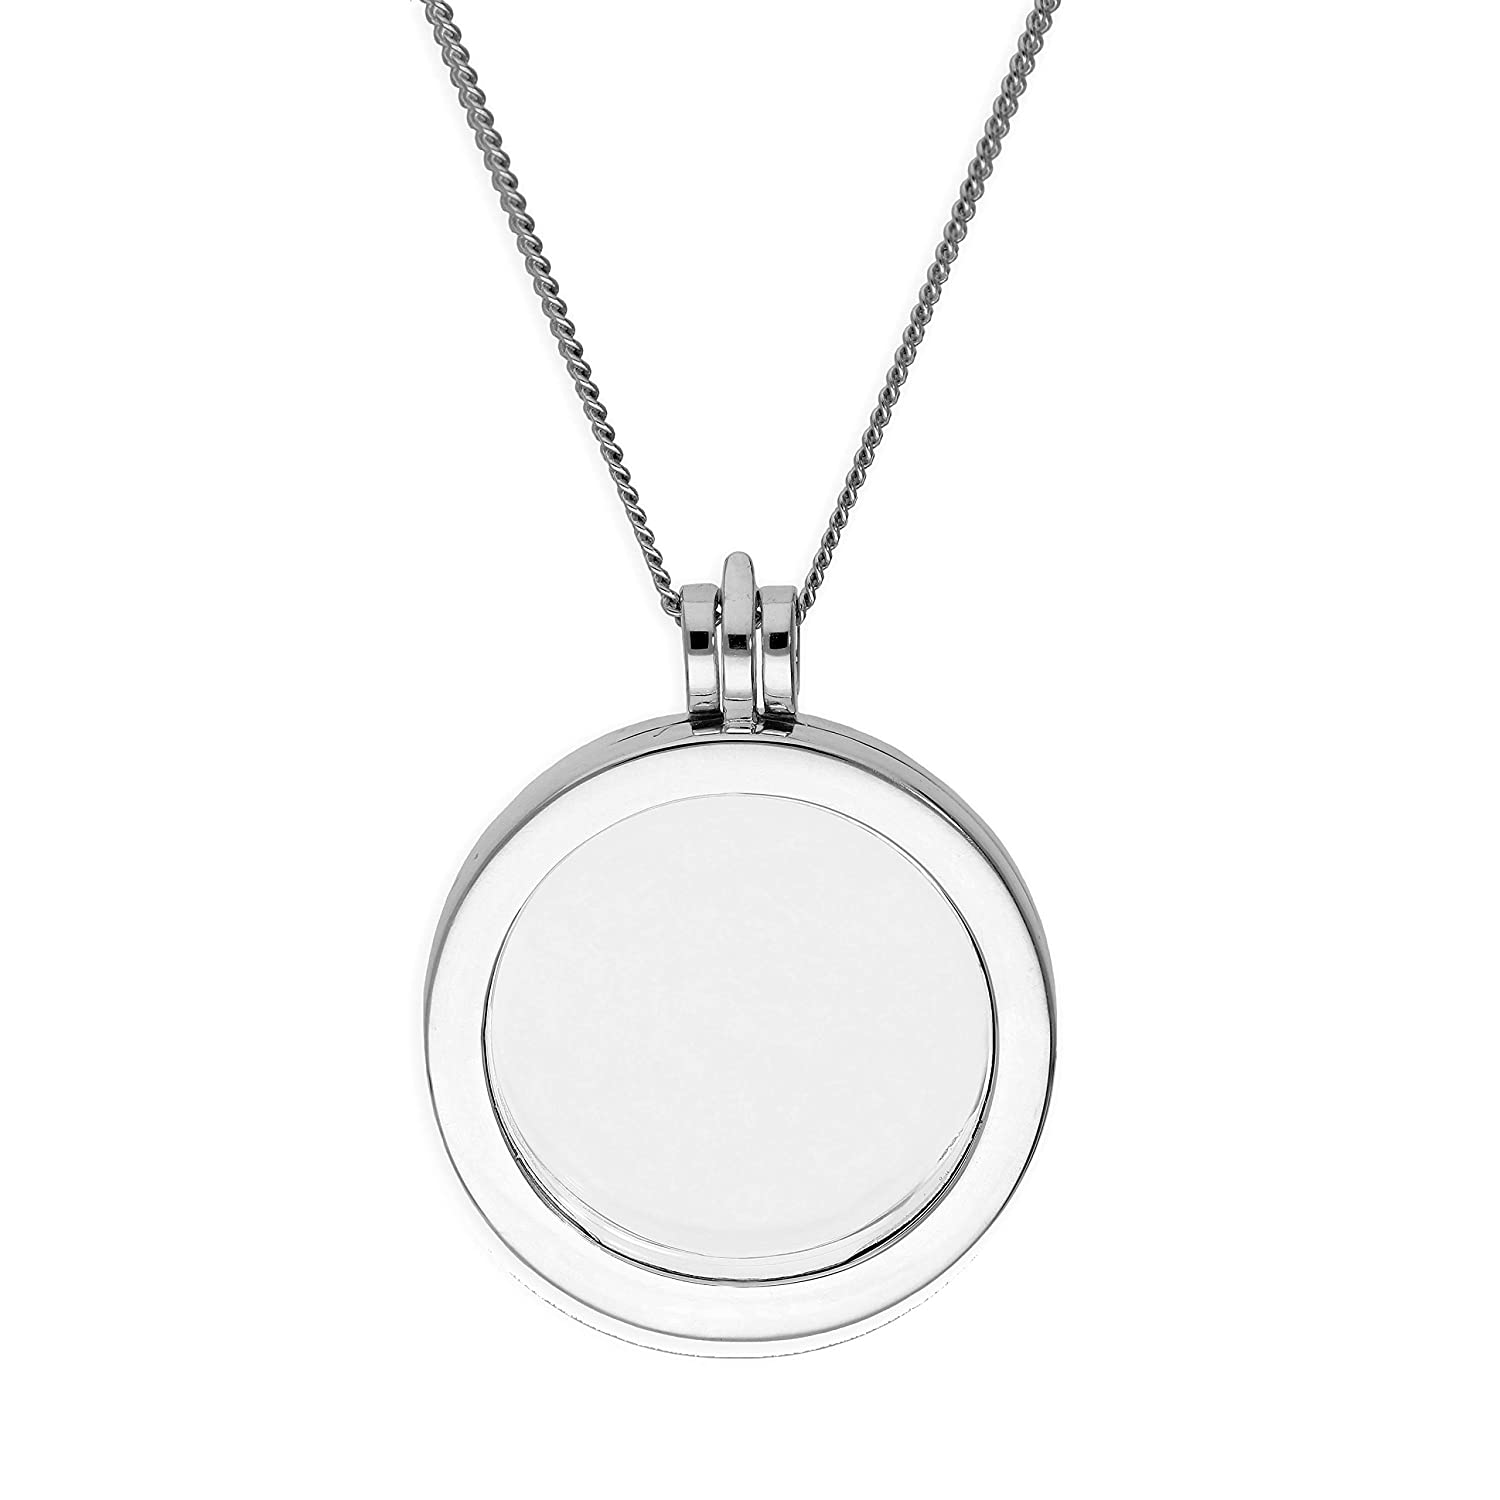 Large Sterling Silver Round Floating Charm Locket on Chain 16-24 Inches